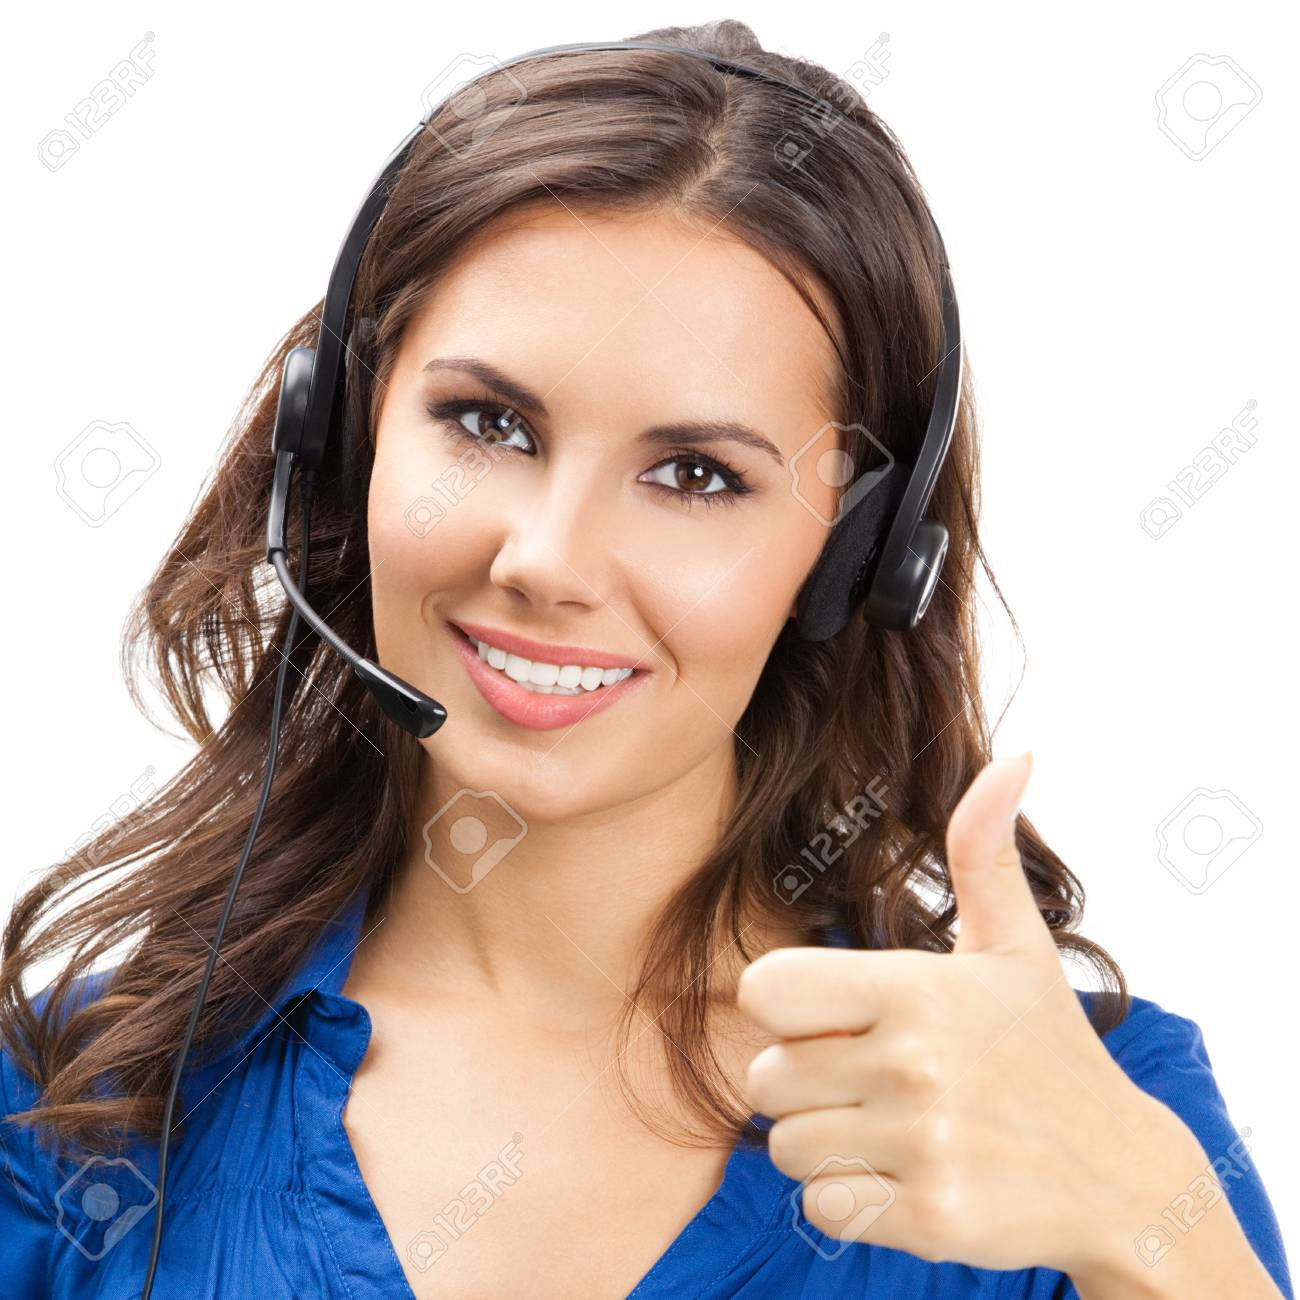 Portrait of happy smiling cheerful young support phone operator showing thumbs up gesture, isolated over white background Stock Photo - 18209180